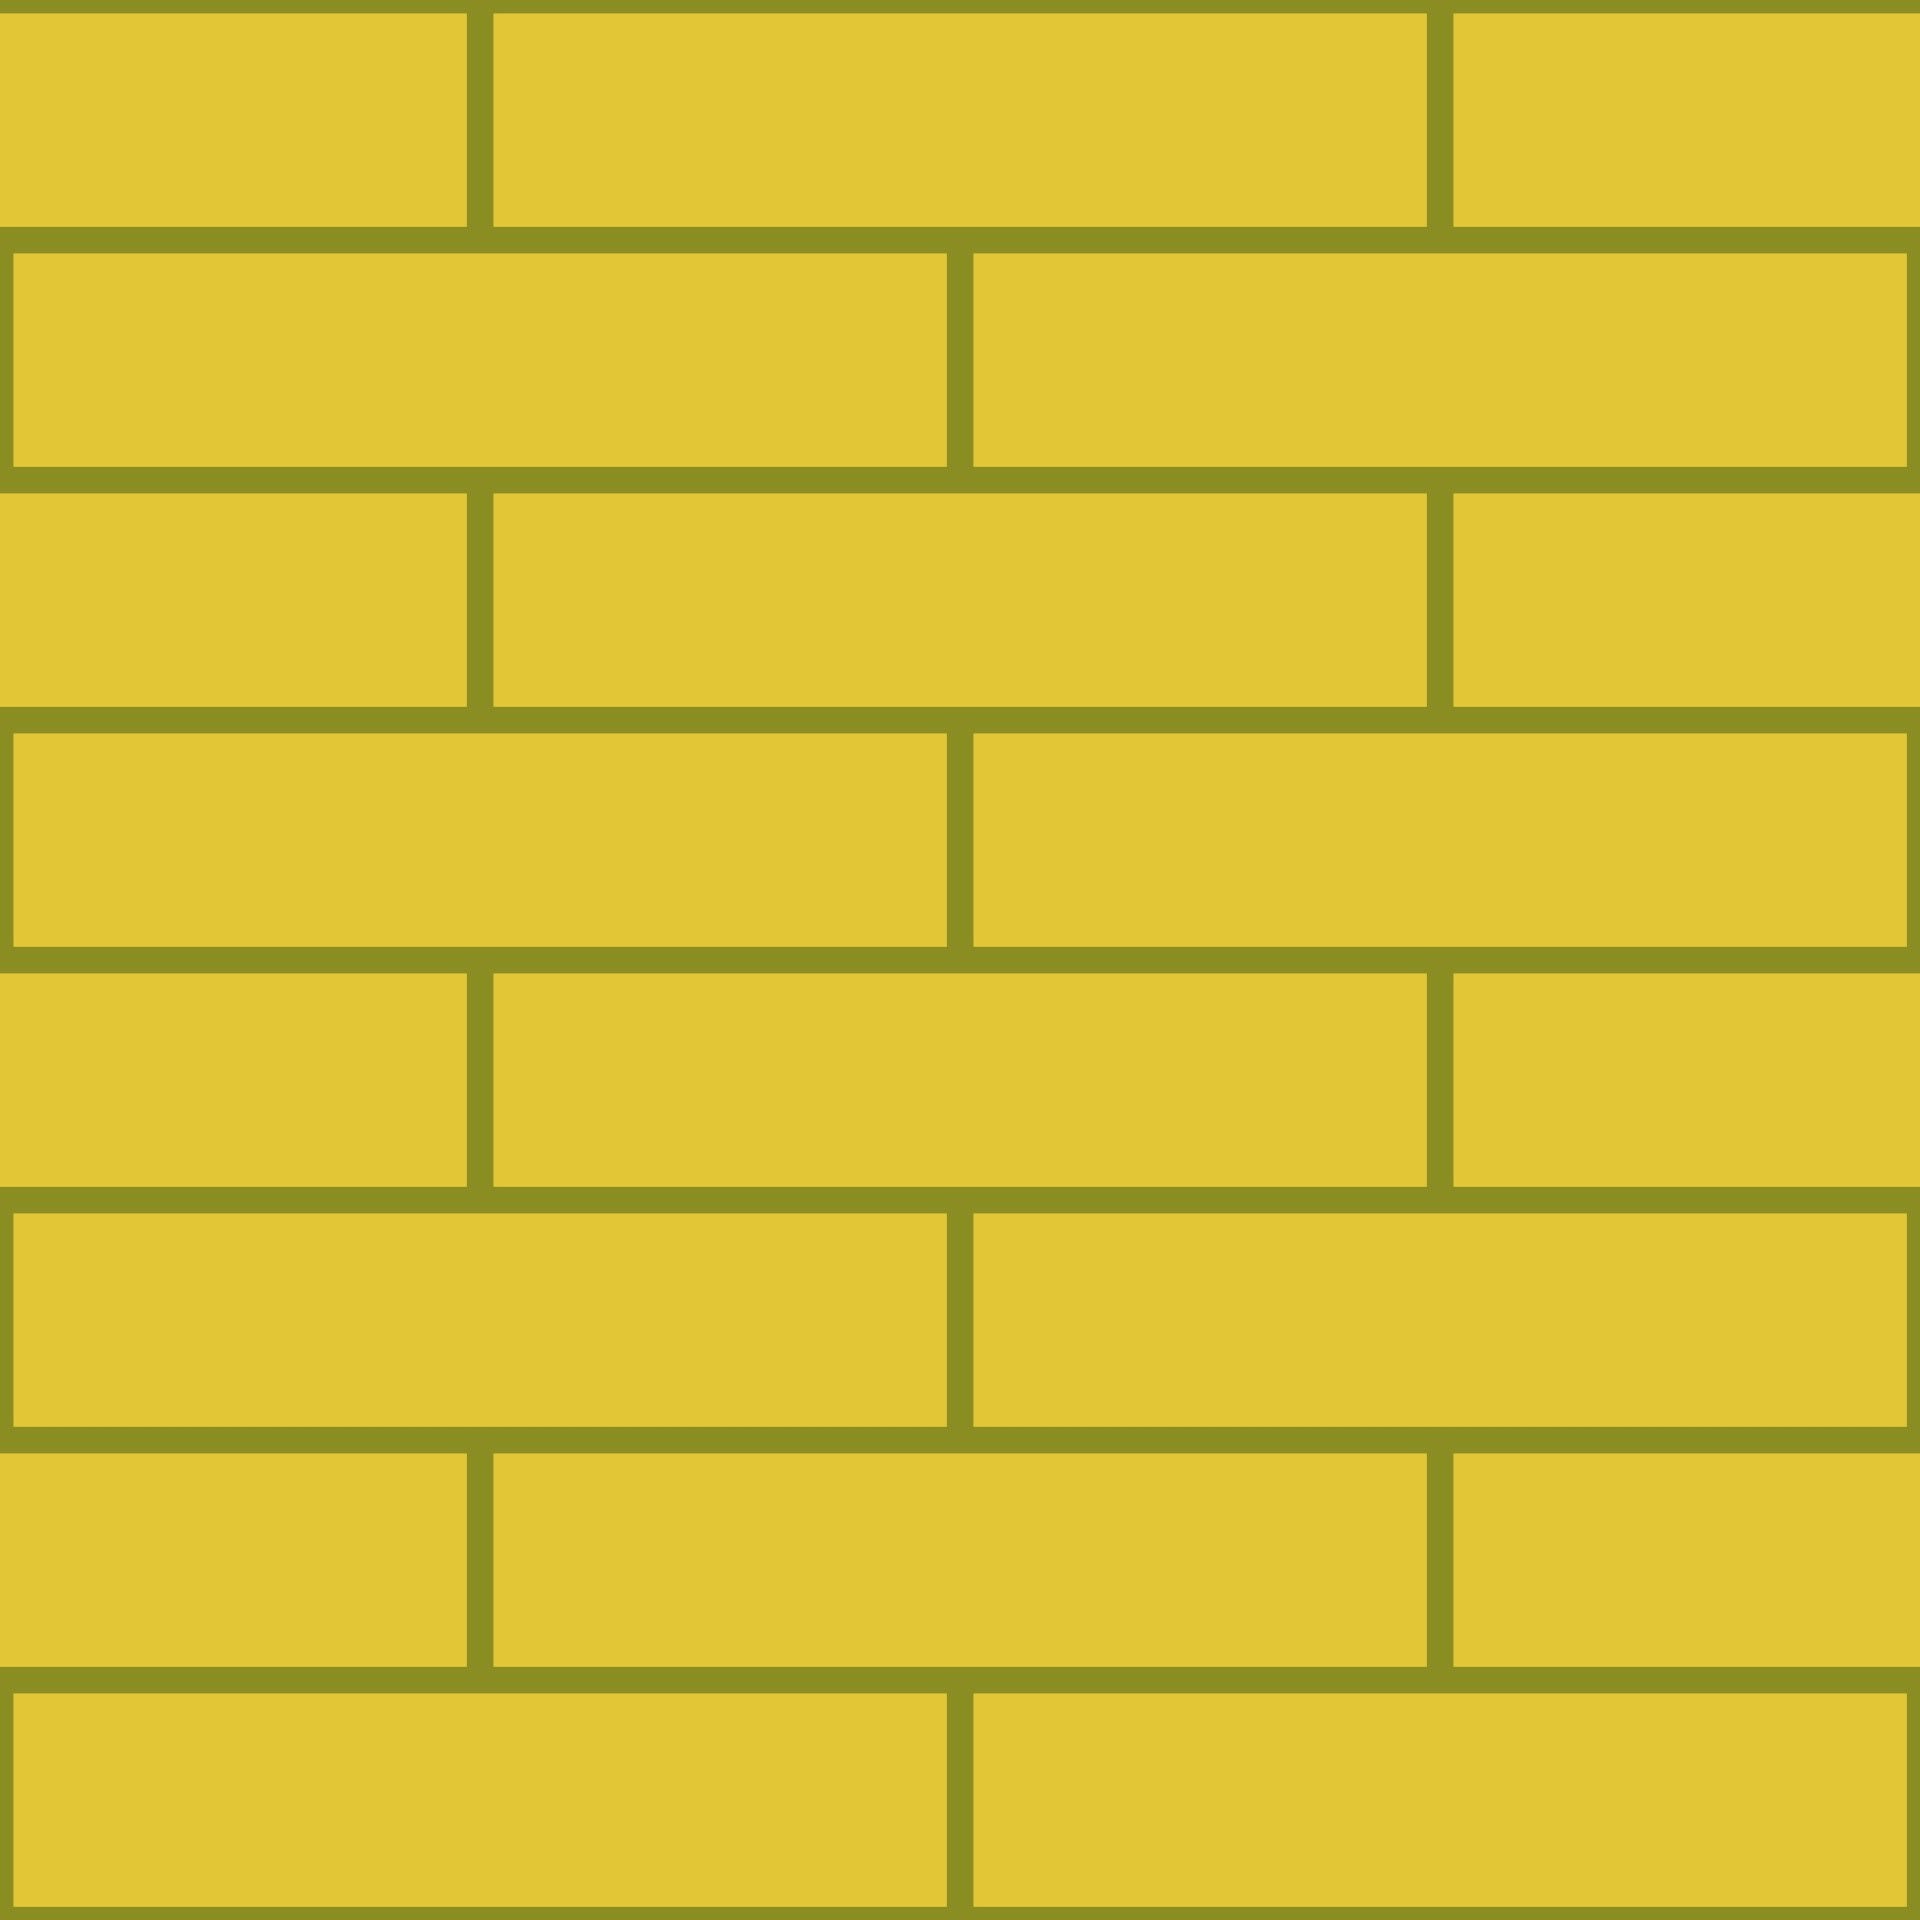 Yellow Brick Wall Free Stock Photo - Public Domain Pictures